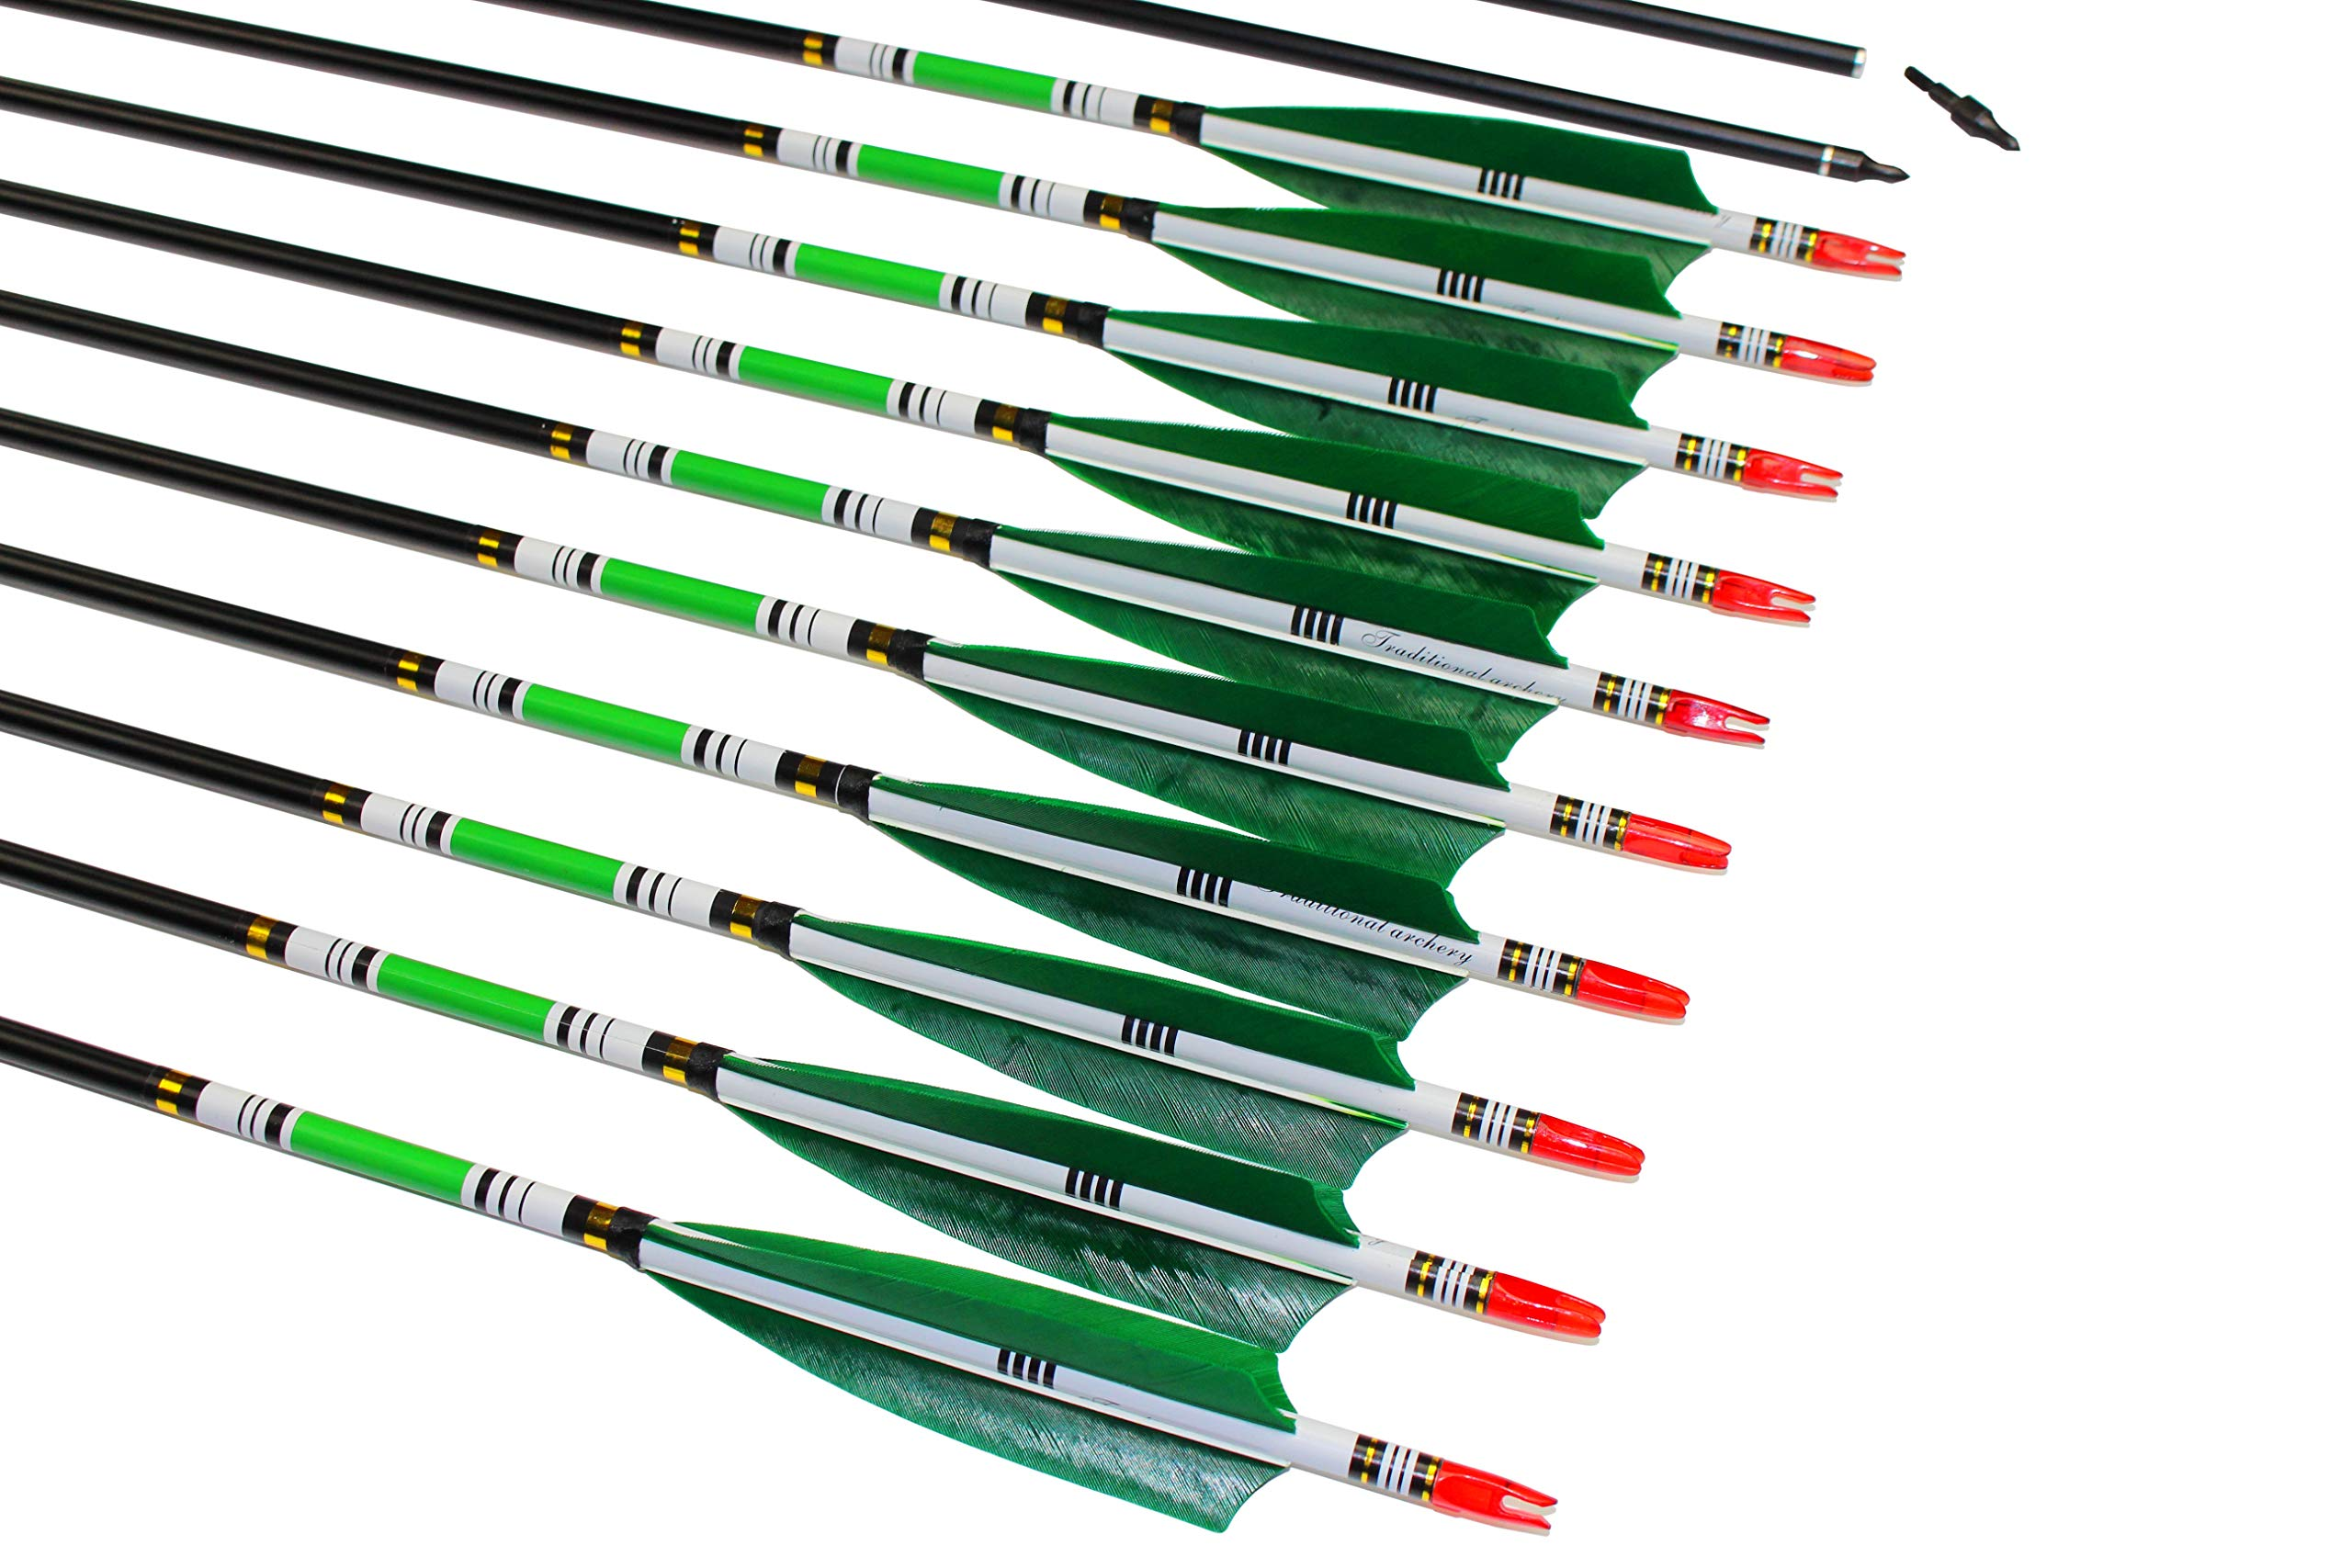 TTAD 31 inch Carbon Arrows Green Turkey Feather Targeting Arrows Archery with Screw-in Field Tips Hunting&Practice(12 Pack) by TTAD